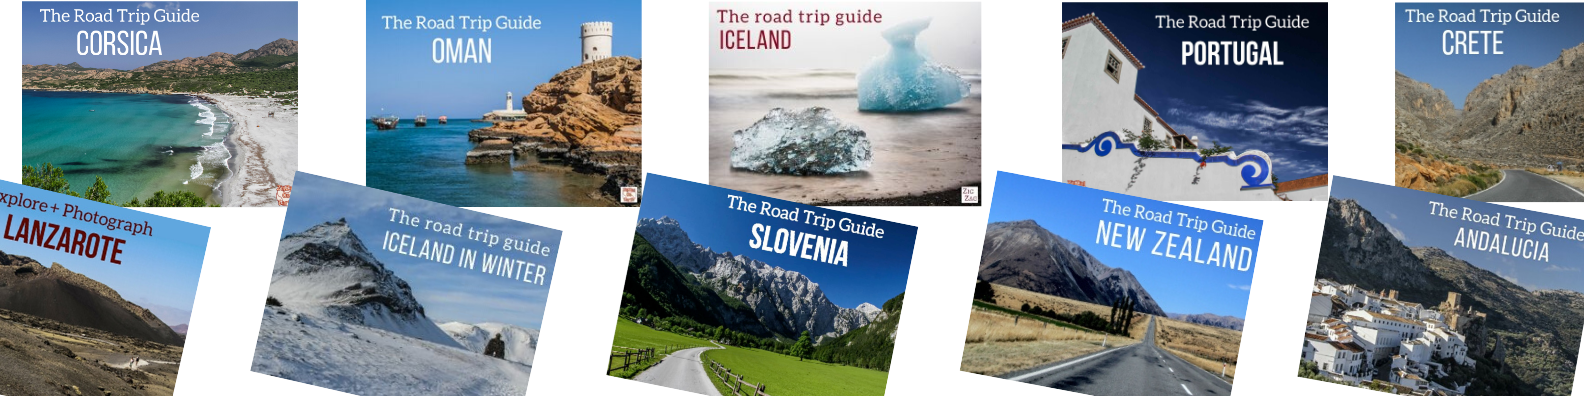 how-i-started-a-9k-month-blog-with-curated-road-trip-travel-guides